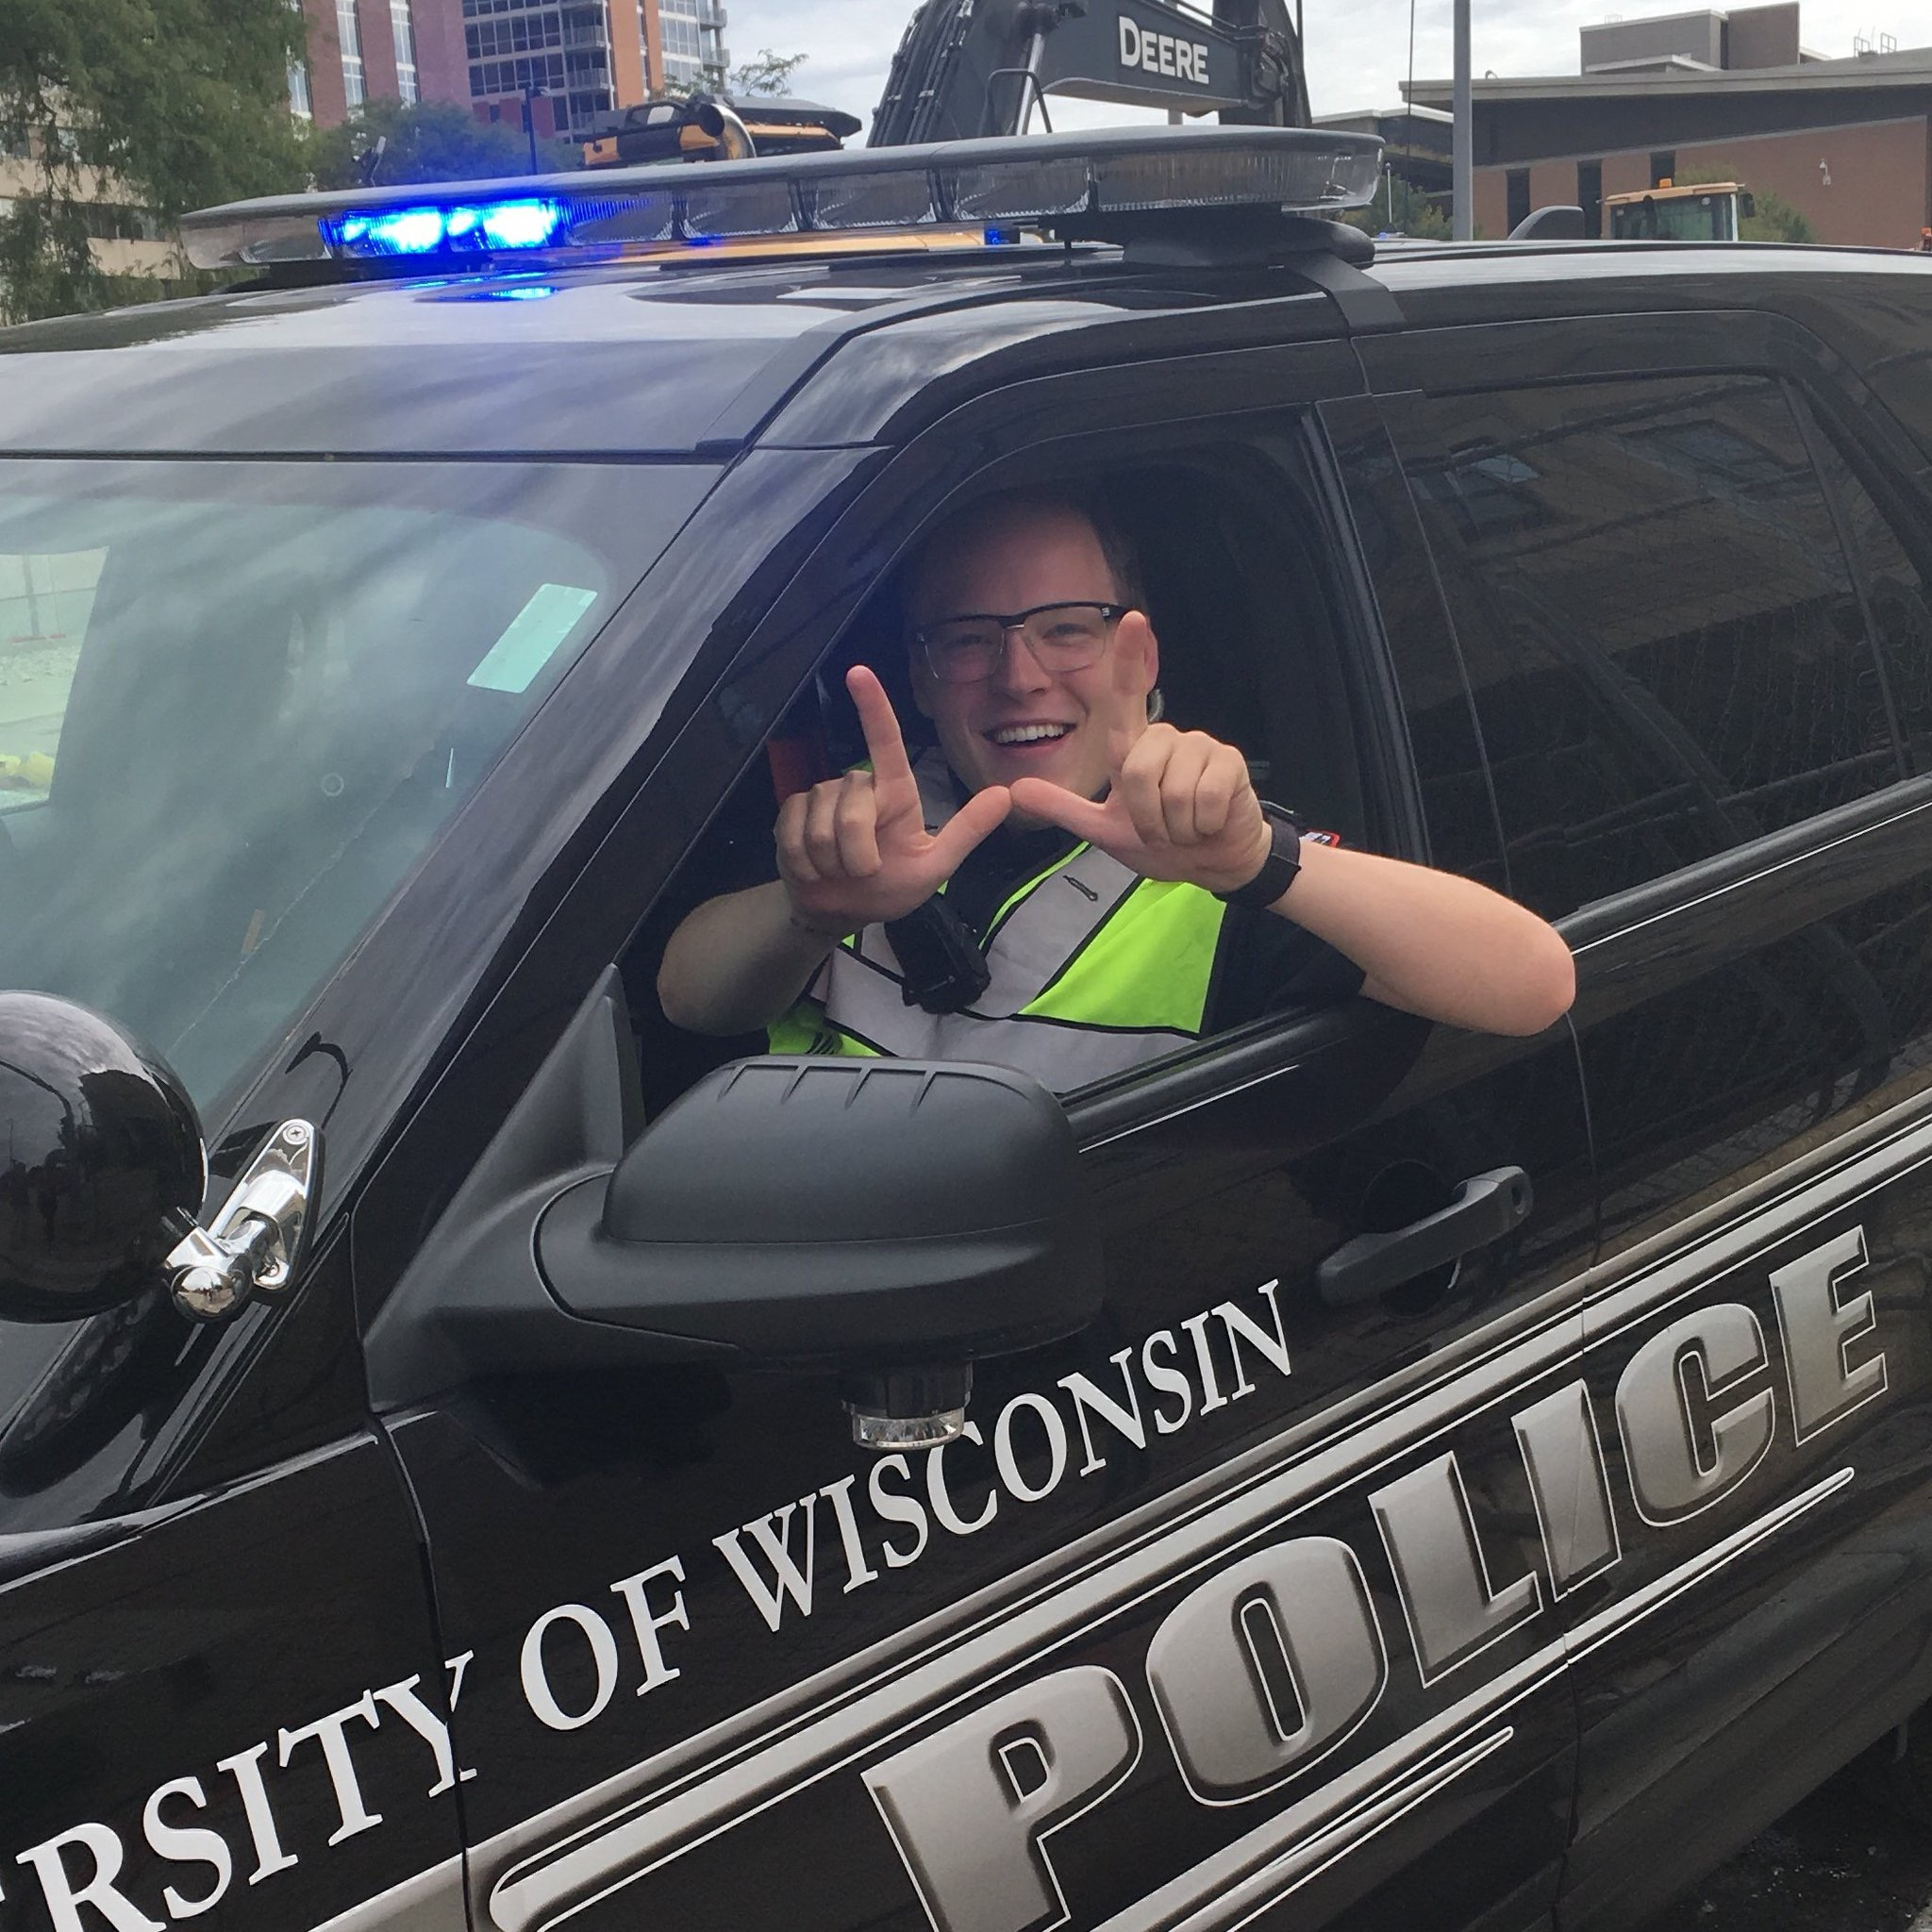 A photo of Officer Jake Lepper sitting in a police squad car and making a